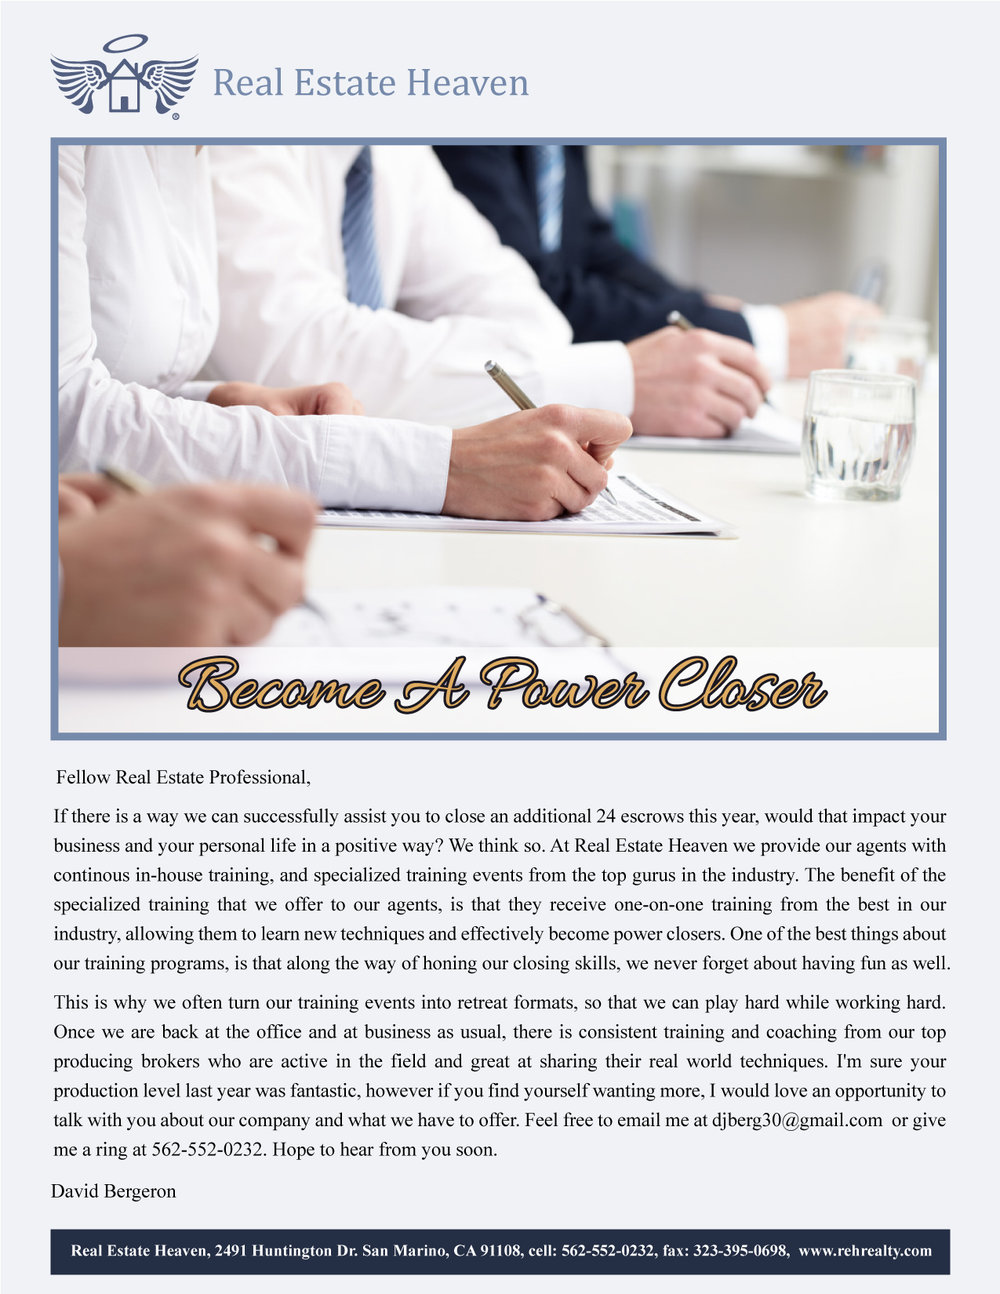 REH_RecruitmentLetter8_LowRes.jpg